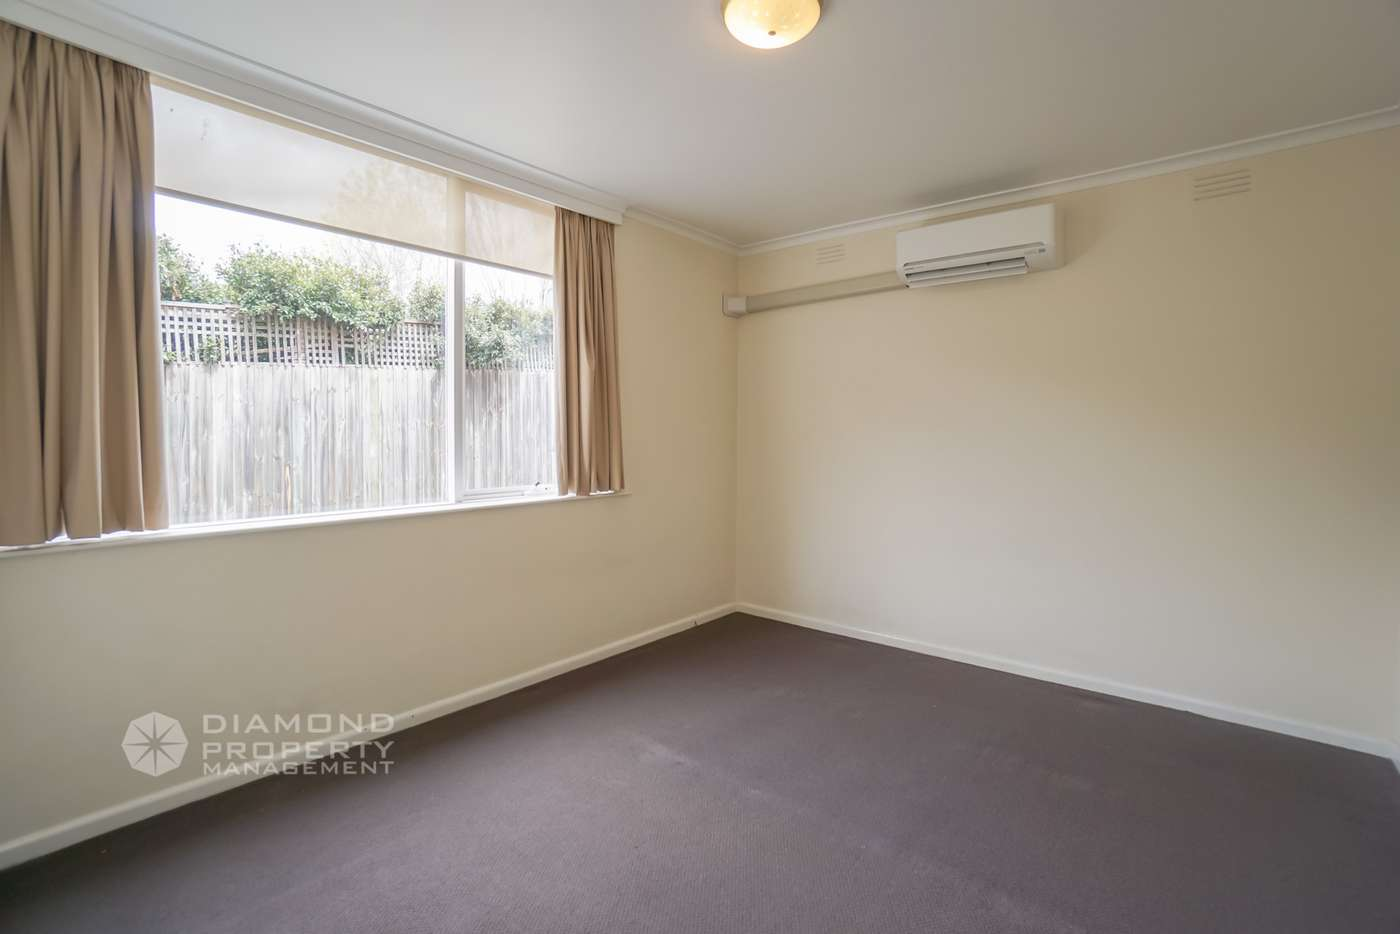 Fifth view of Homely apartment listing, 2/147 Tooronga Road, Glen Iris VIC 3146